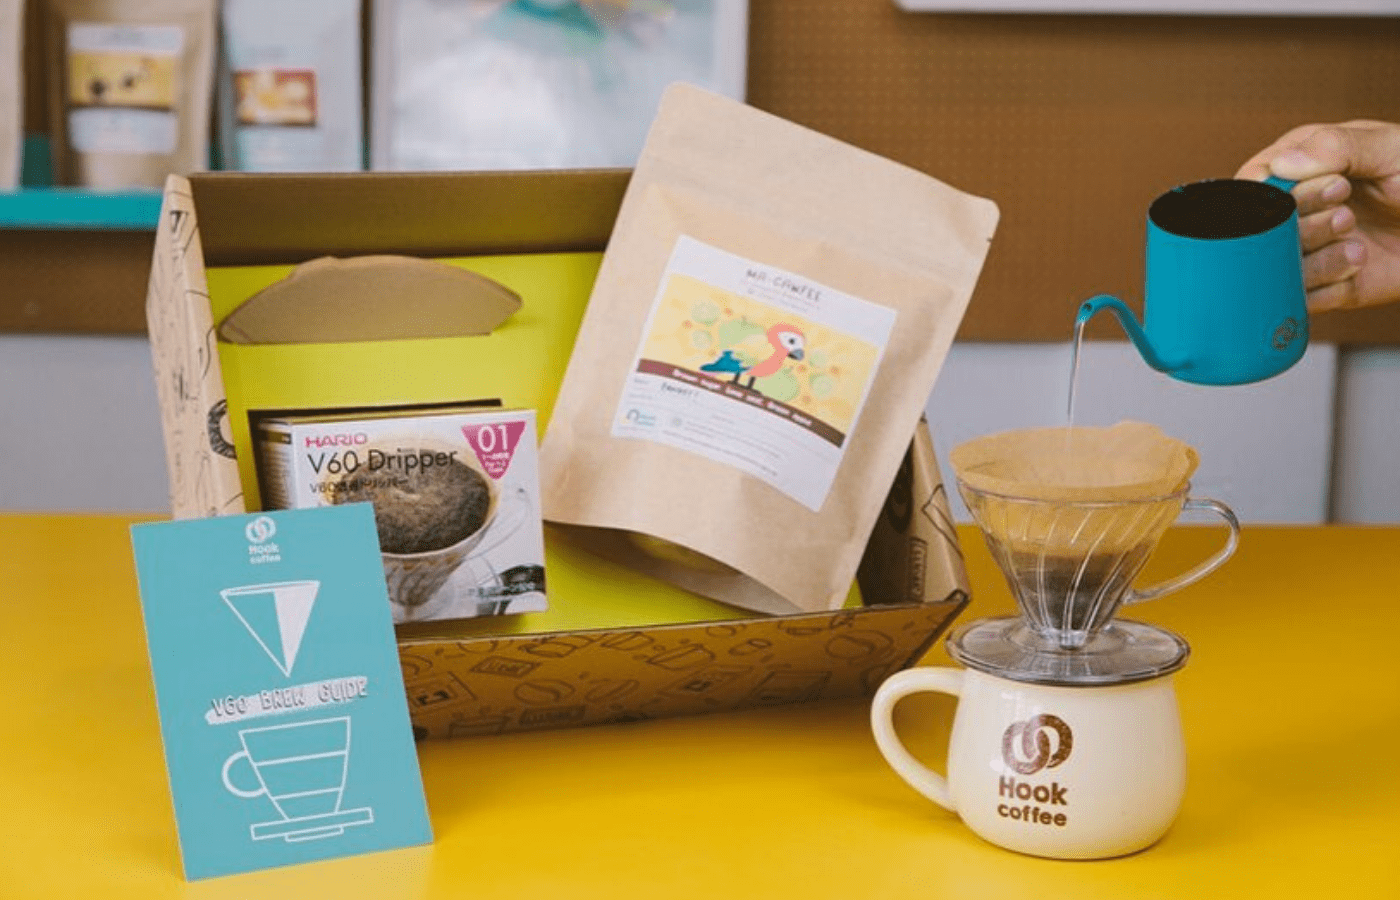 hook coffee care packages